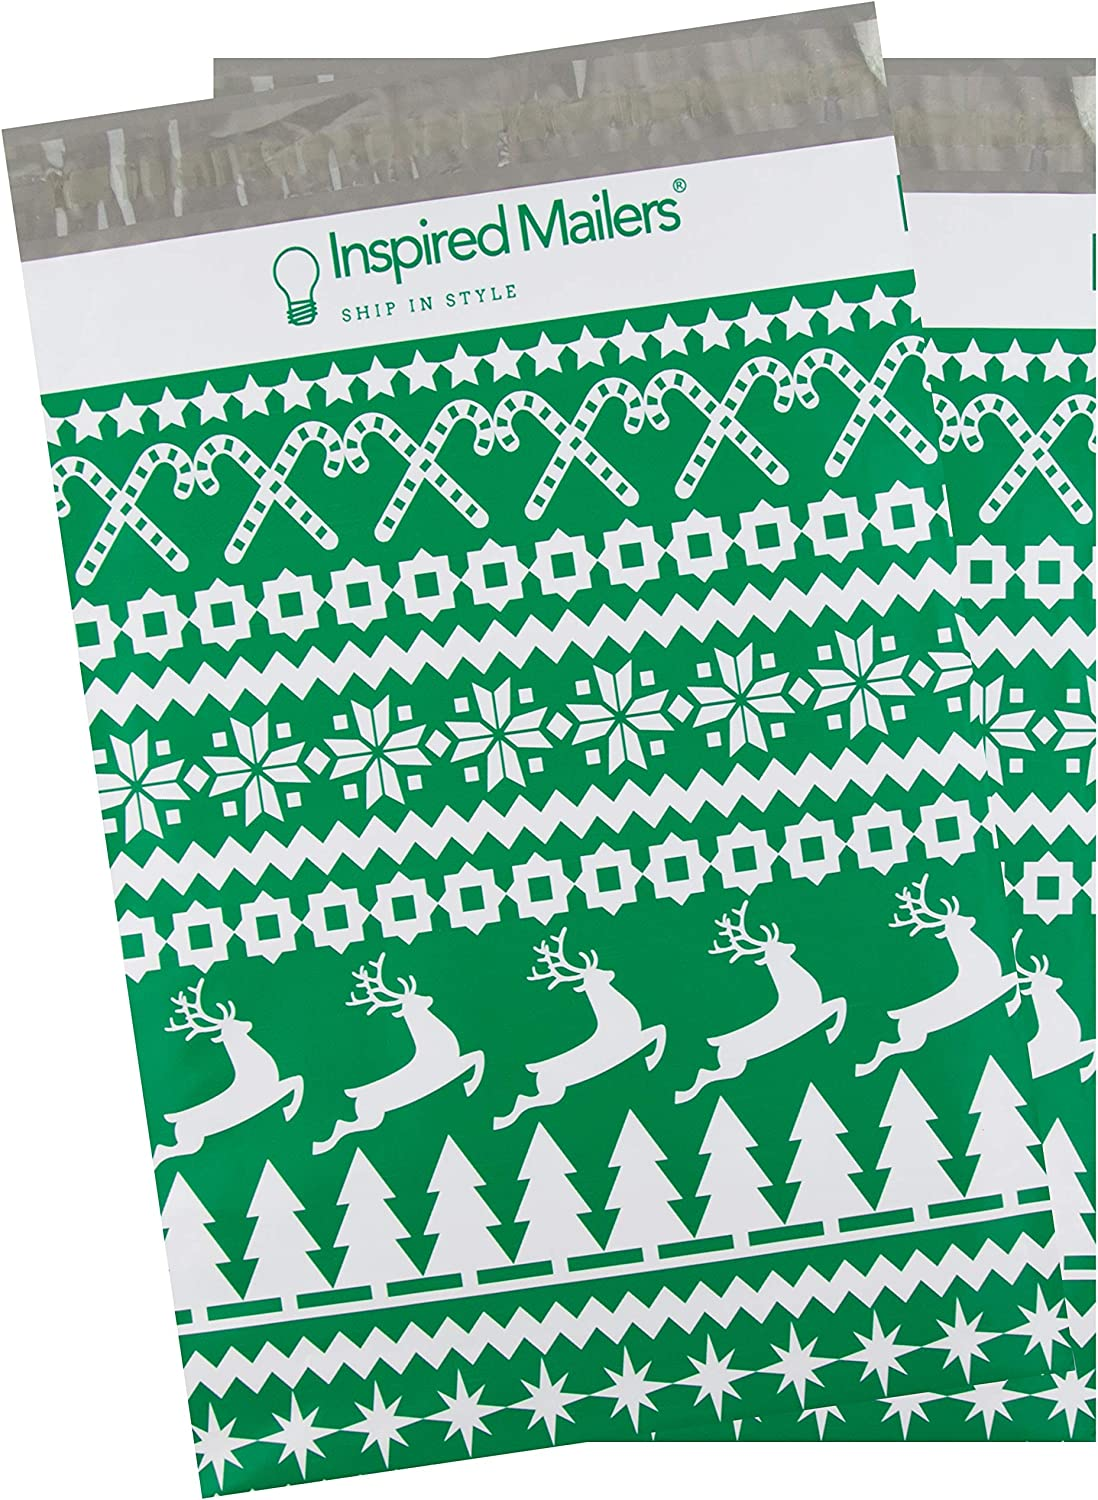 Inspired Mailers - Poly Mailers 10x13-100 Pack - Green Christmas Sweater - Holiday Shipping Bags - Mailing Envelopes - 10x13 Mailers - Packaging Bags for Shipping